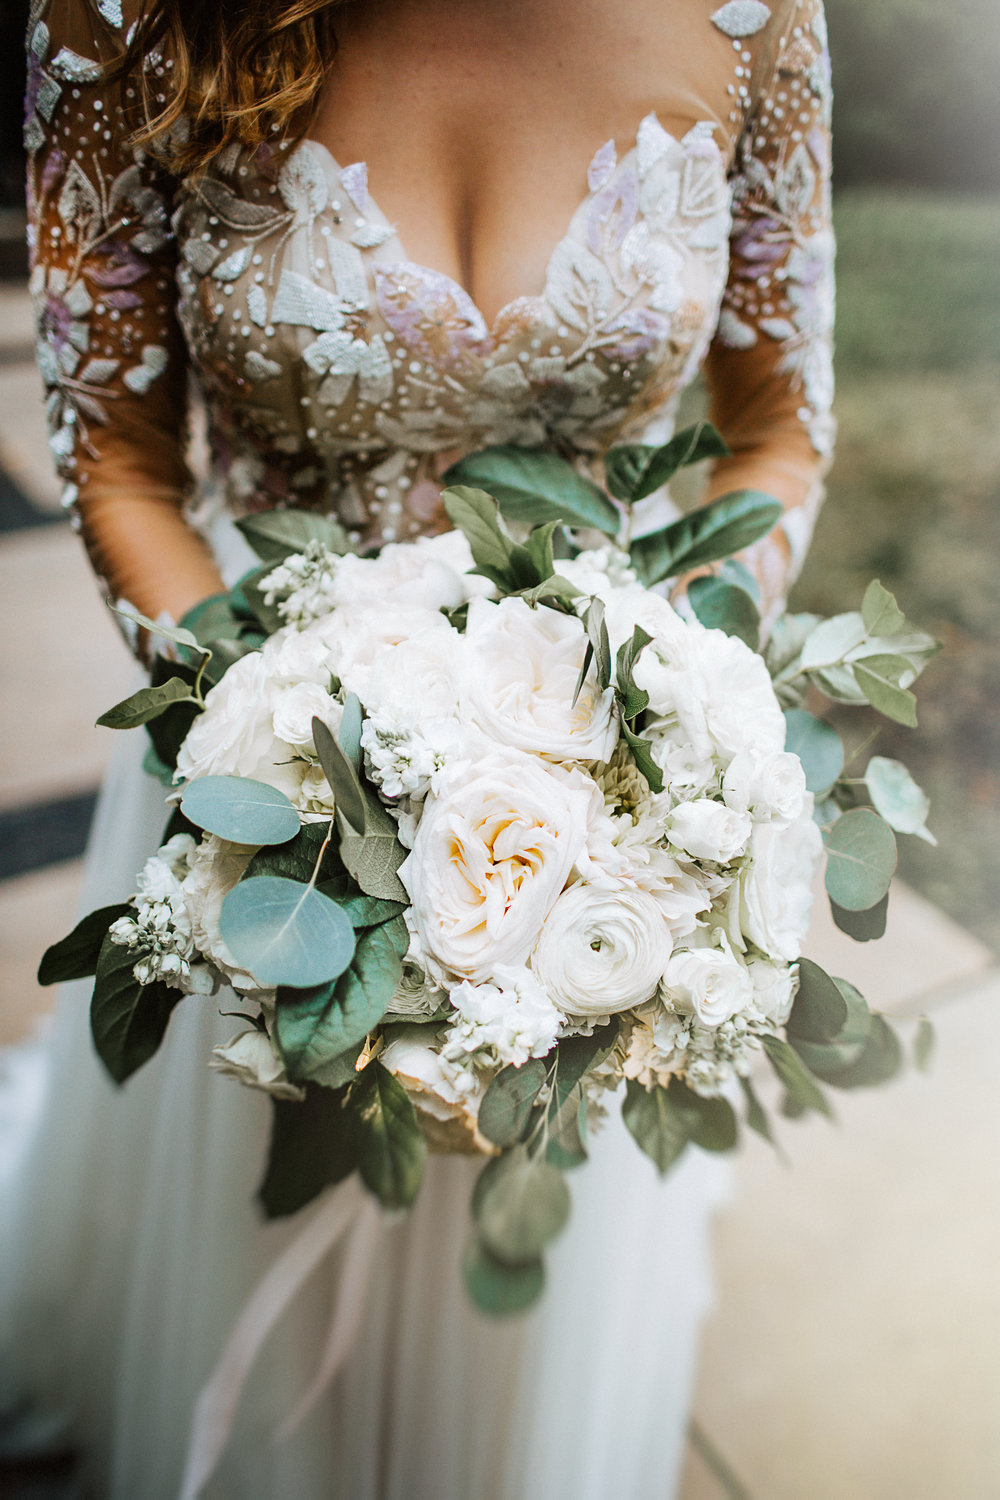 Loose Round Garden Bouquet  Style: Romantic Details: White Ohara Garden roses, ranunculus, stock, mixed greenery   {Photo courtesy of  Atley + Liz Collective }